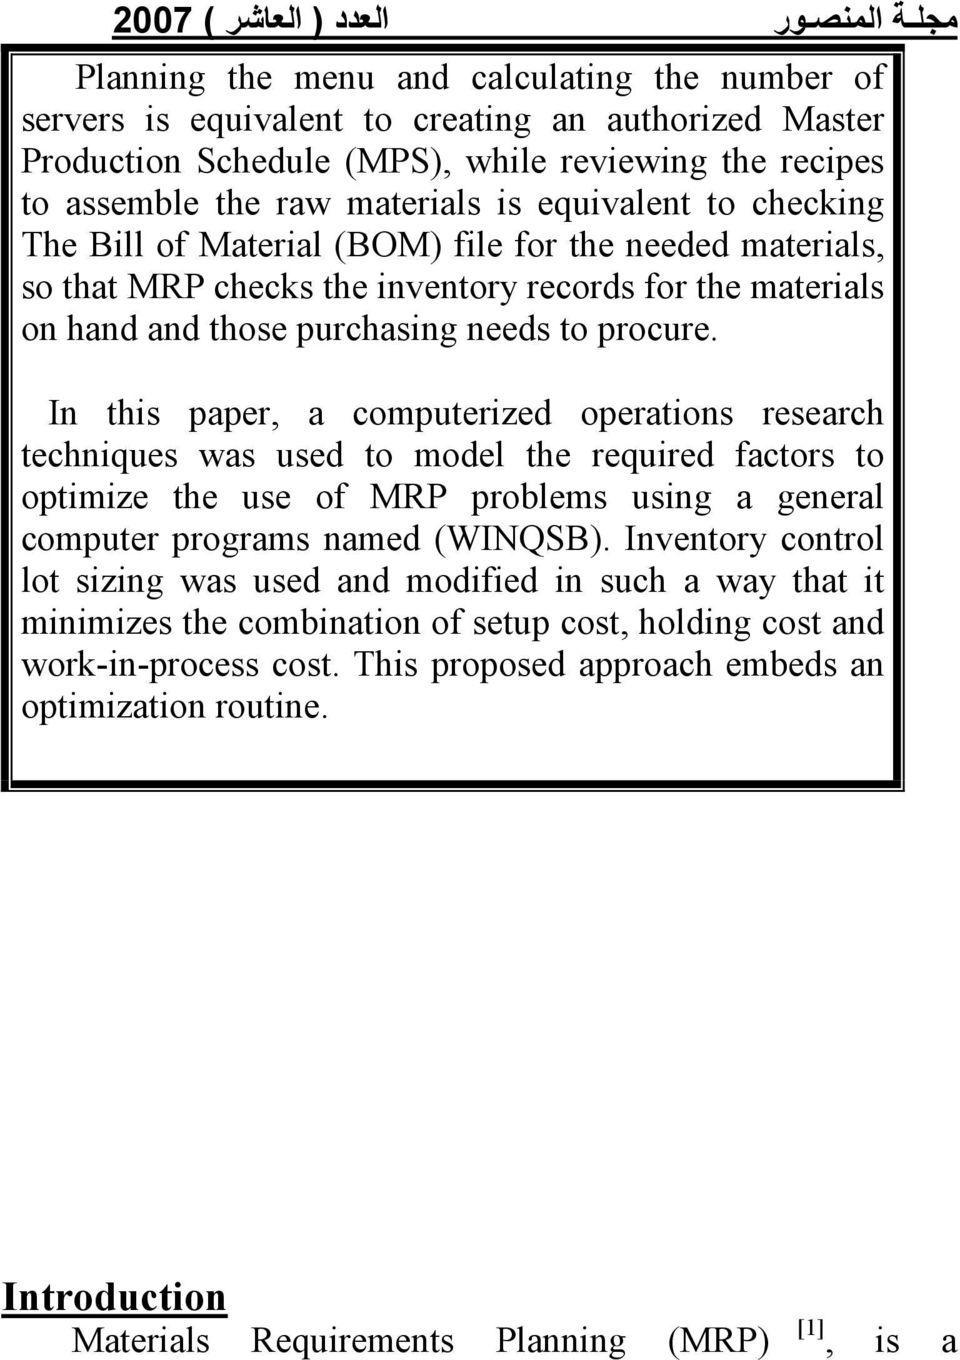 In this paper, a computerized operations research techniques was used to model the required factors to optimize the use of MRP problems using a general computer programs named (WINQSB).